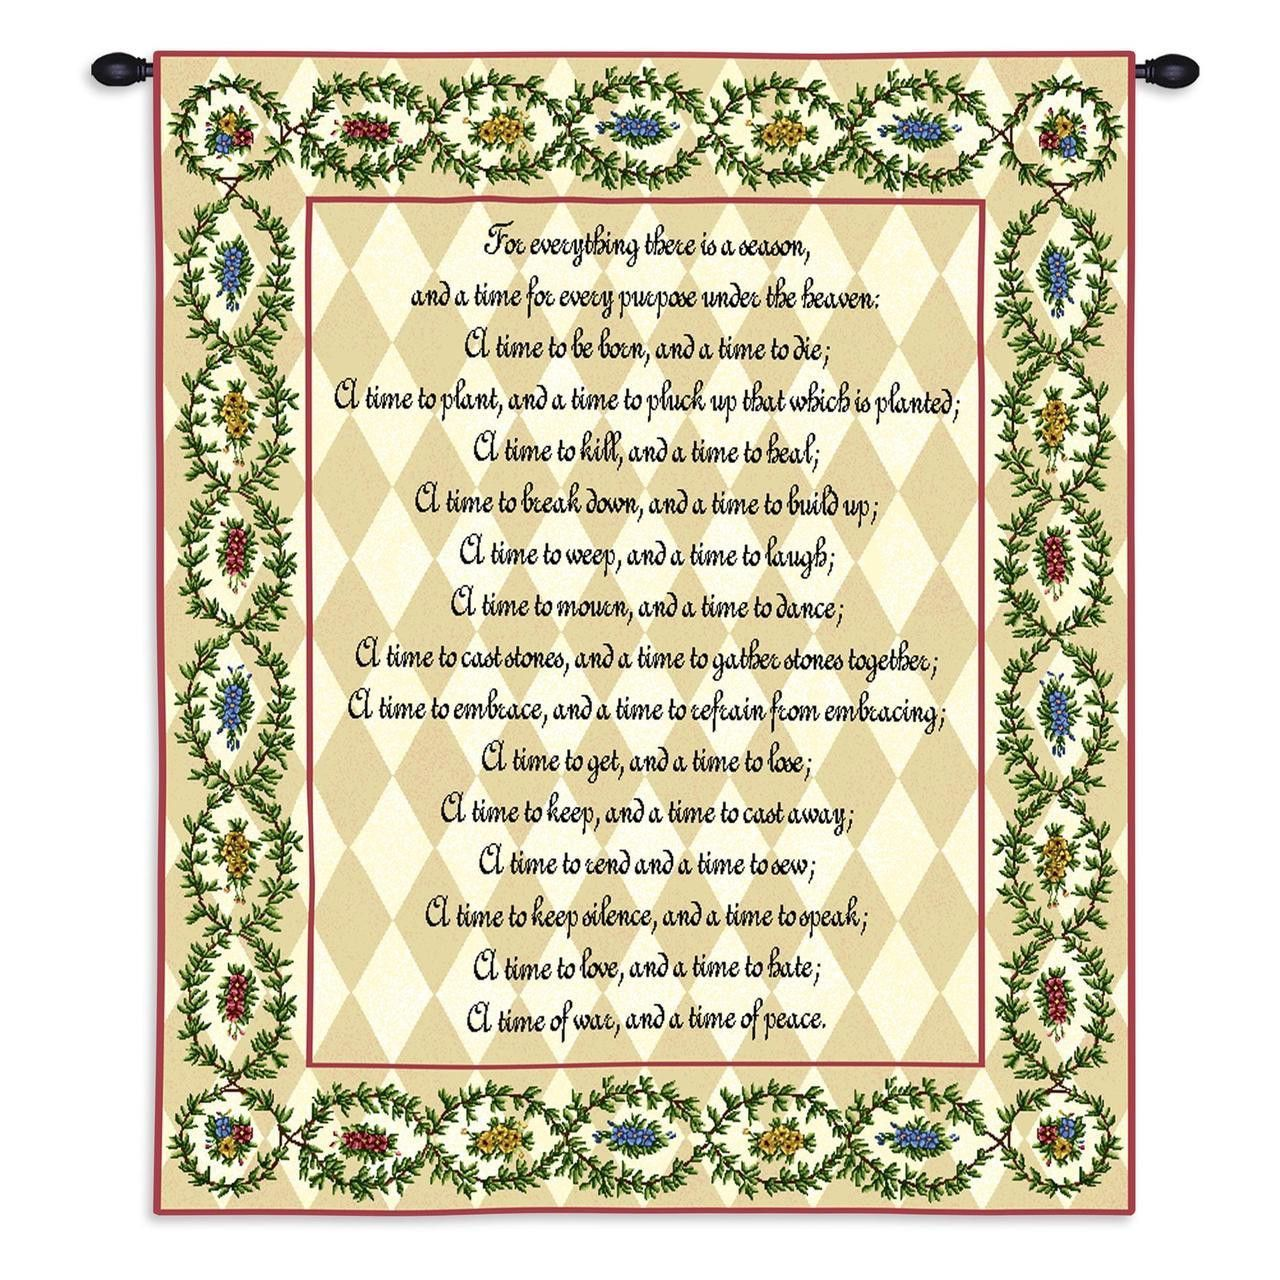 For Everything There Is A Season Poem Art Tapestry Wall Hanging ...